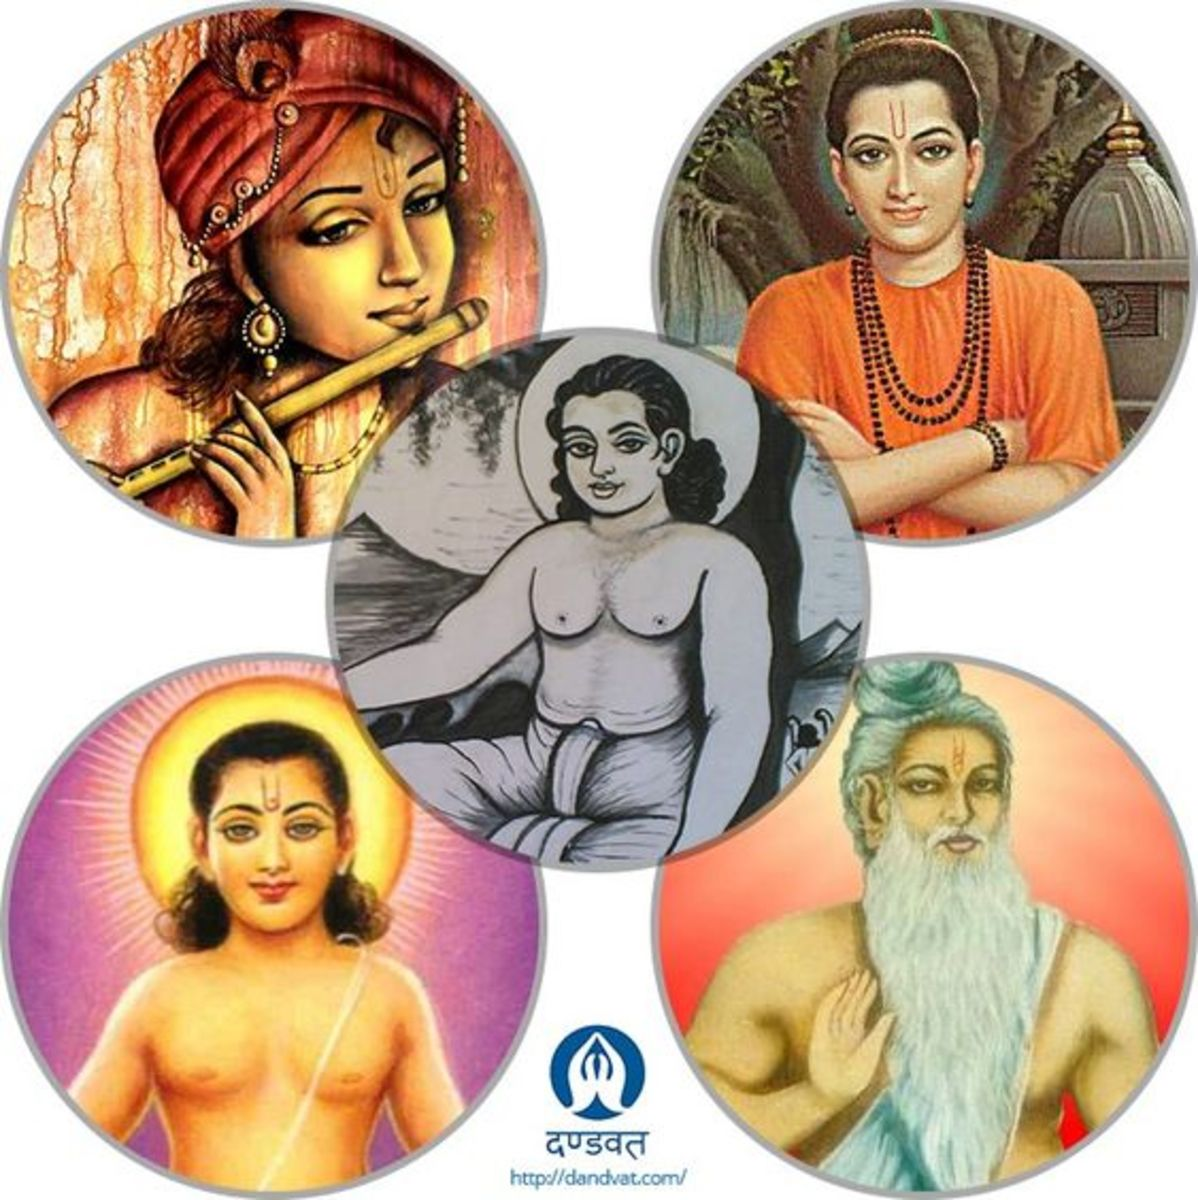 He founded the Mahanubhav Sect